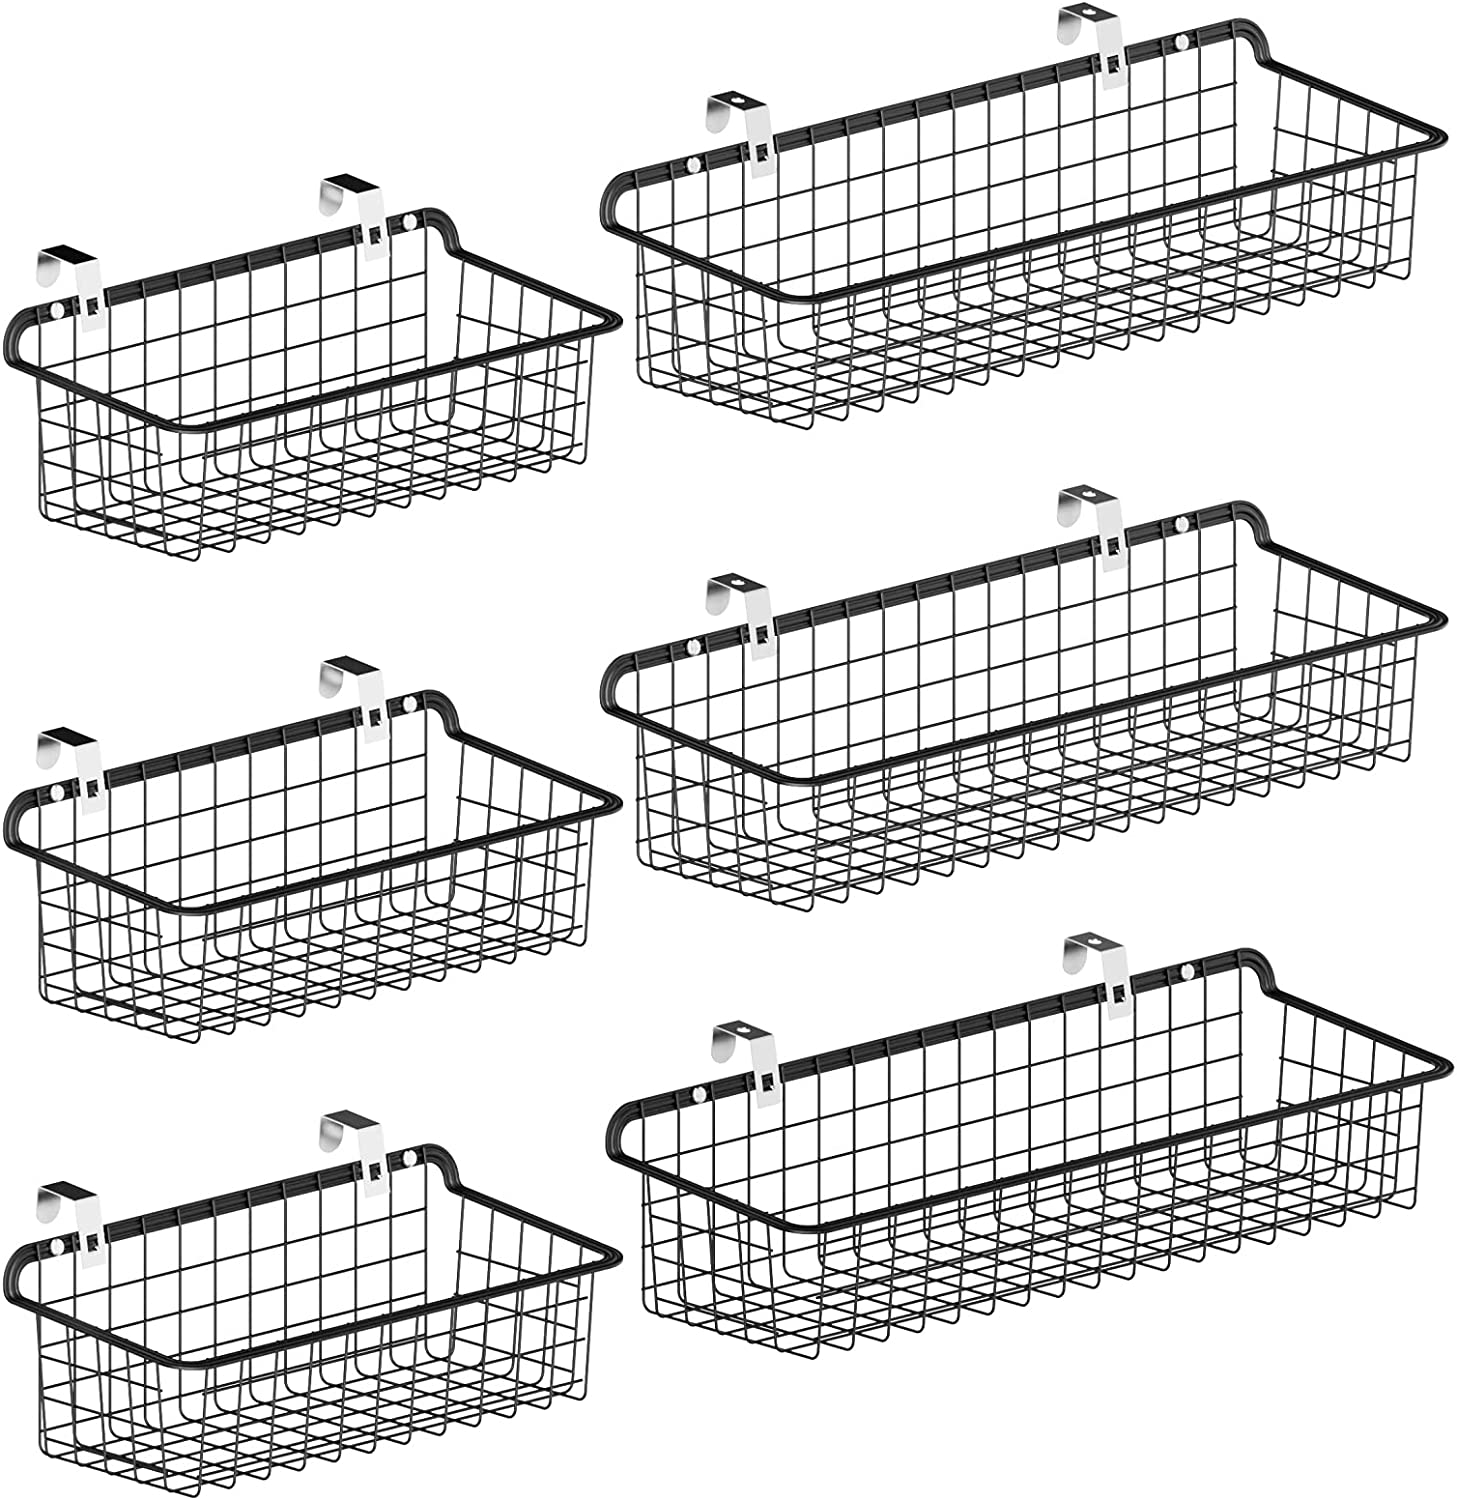 Wall Basket Cambond Metal Ranking TOP3 55% OFF Mounted Storage Wire for Baskets